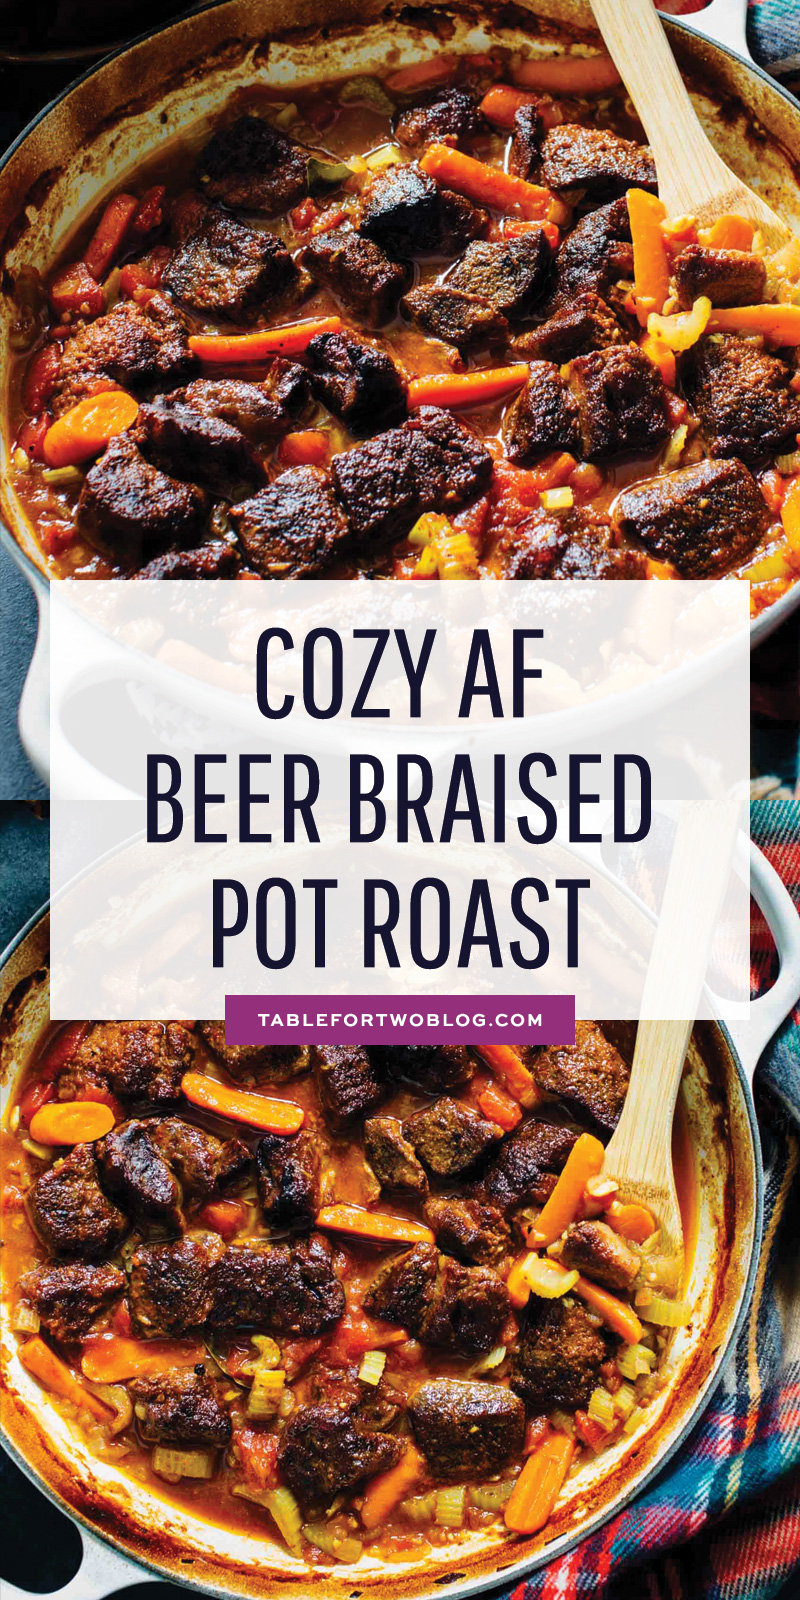 An incredibly comforting and rich beer braised pot roast. It is cozy AF and you'll literally want bowls of it in the chilly months! #beerbraised #potroast #slowcooking #lowandslow #beef #roastrecipe